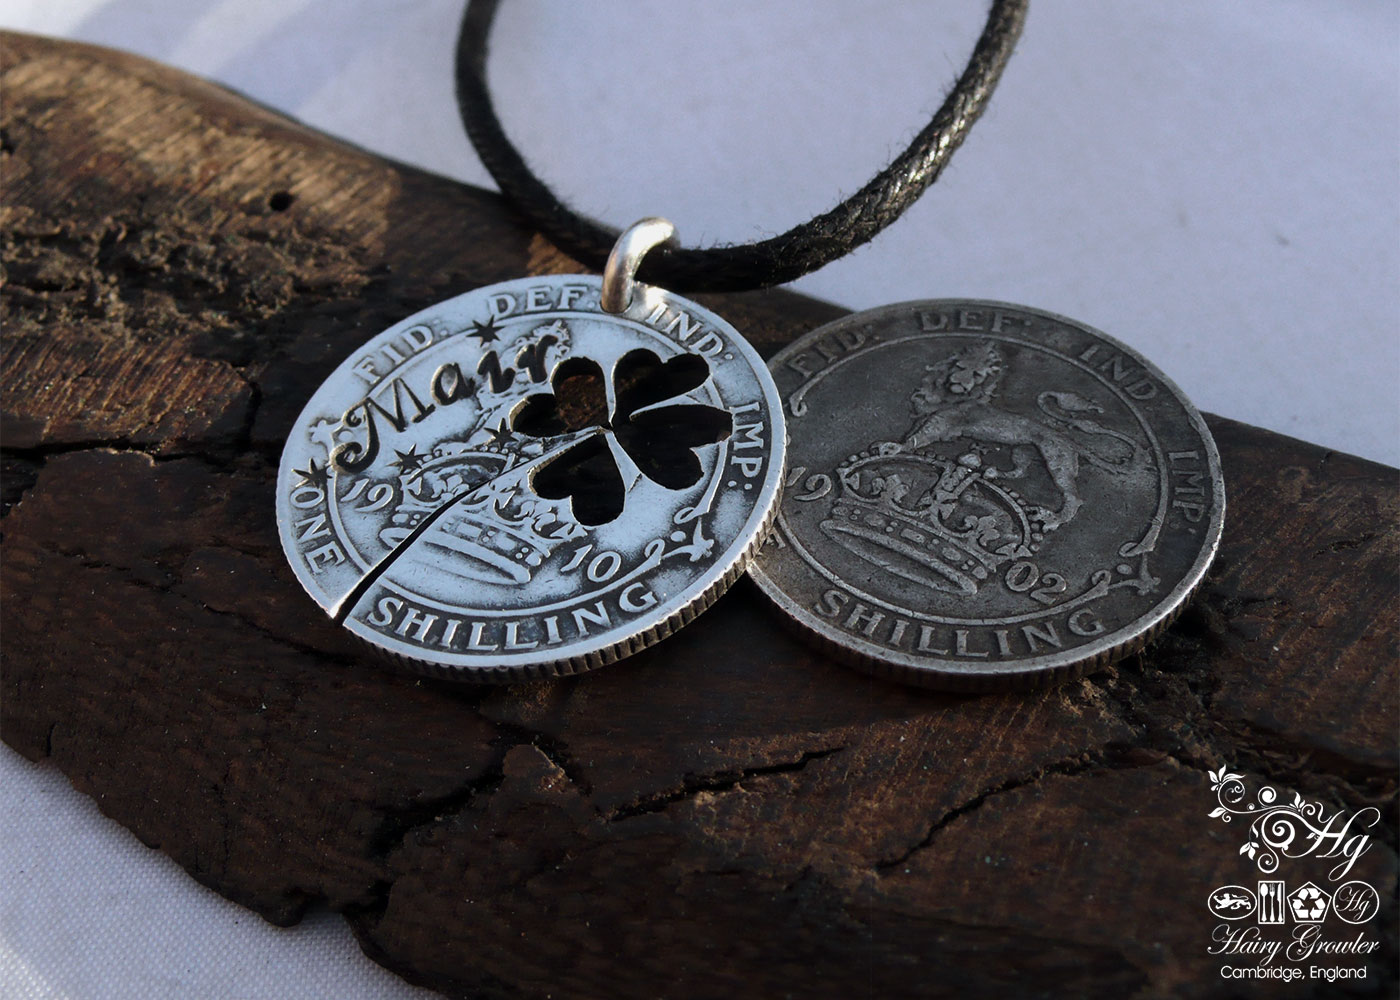 Handcrafted and recycled lucky silver shilling coin necklace pendant